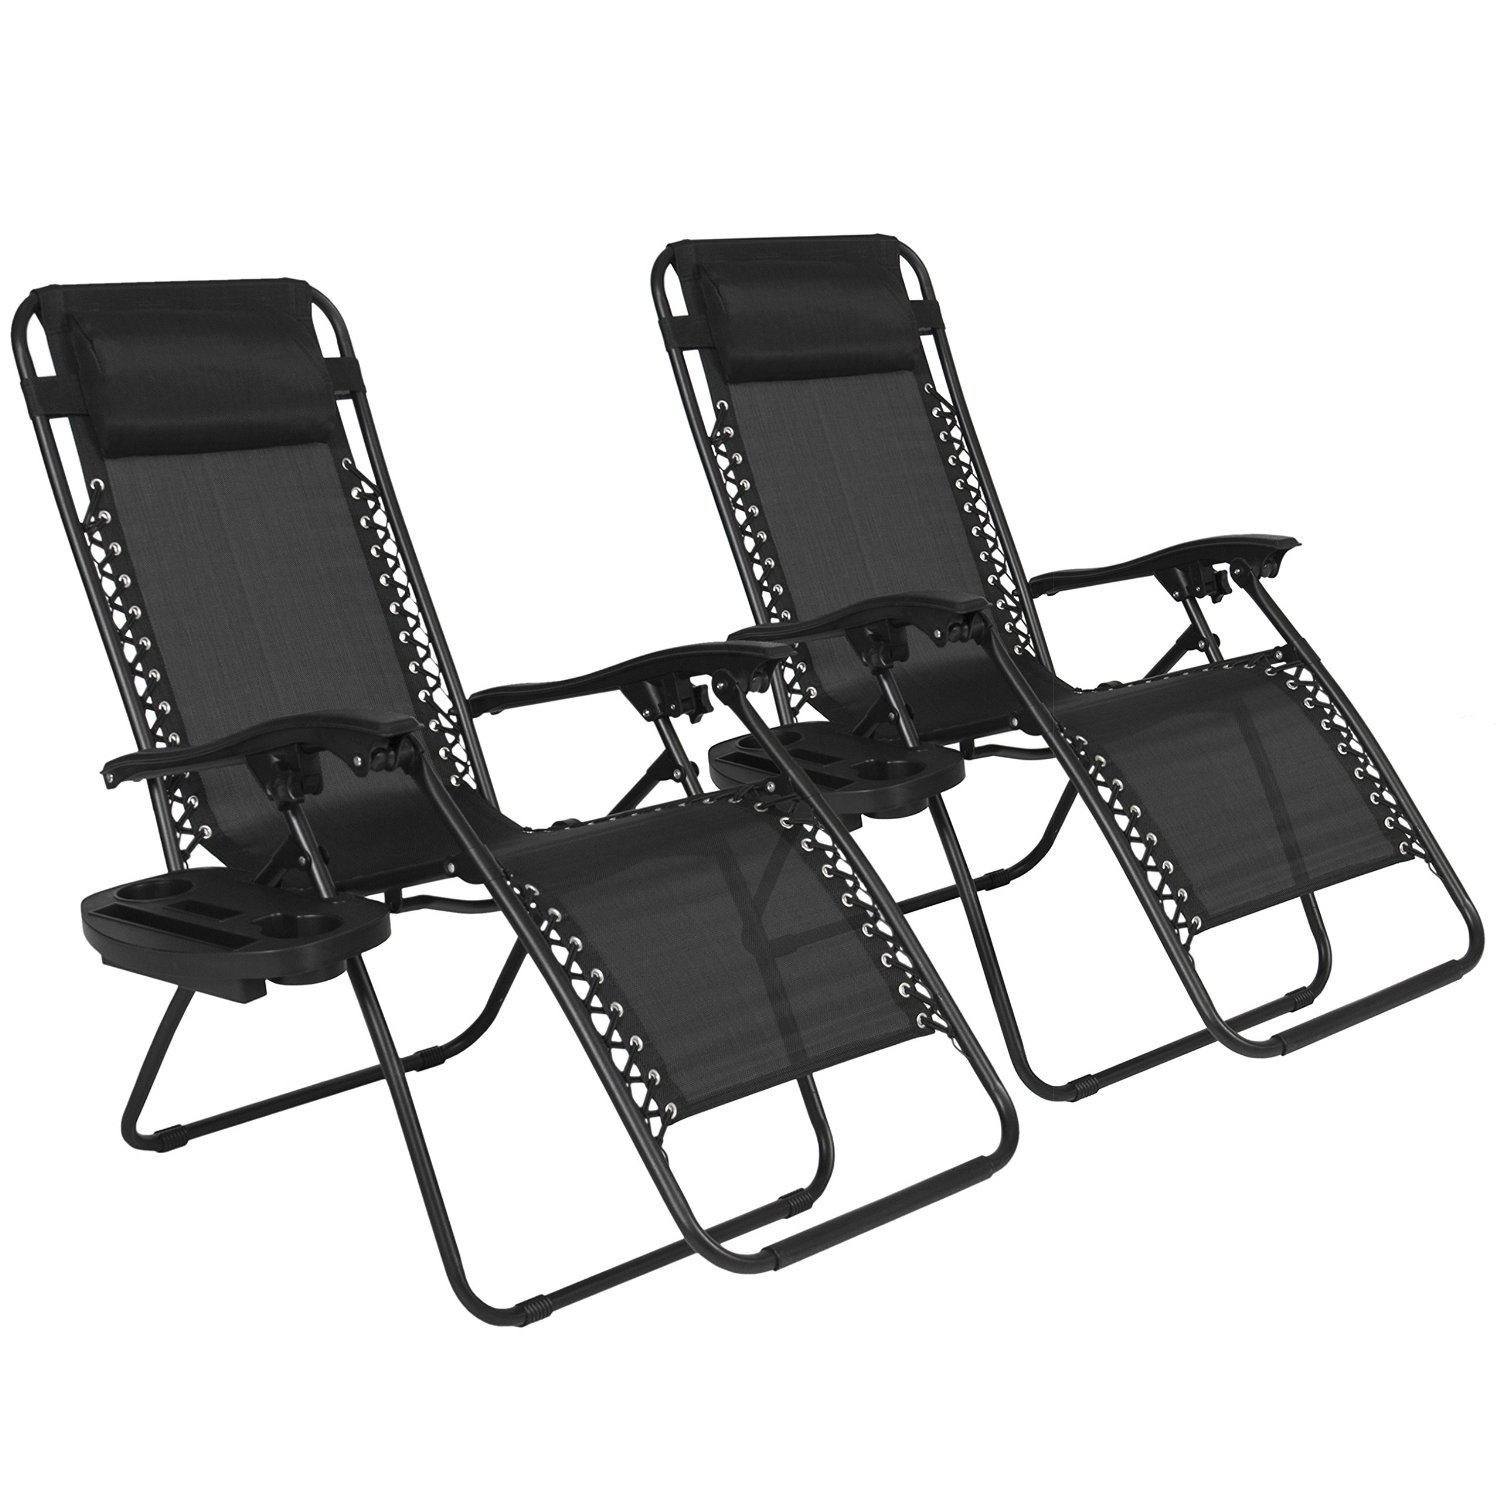 Best Choice Product Zero Gravity Chair, 250 lbs ... - Top 10 Best Zero Gravity Chair Reviews - Find Yours [2018]